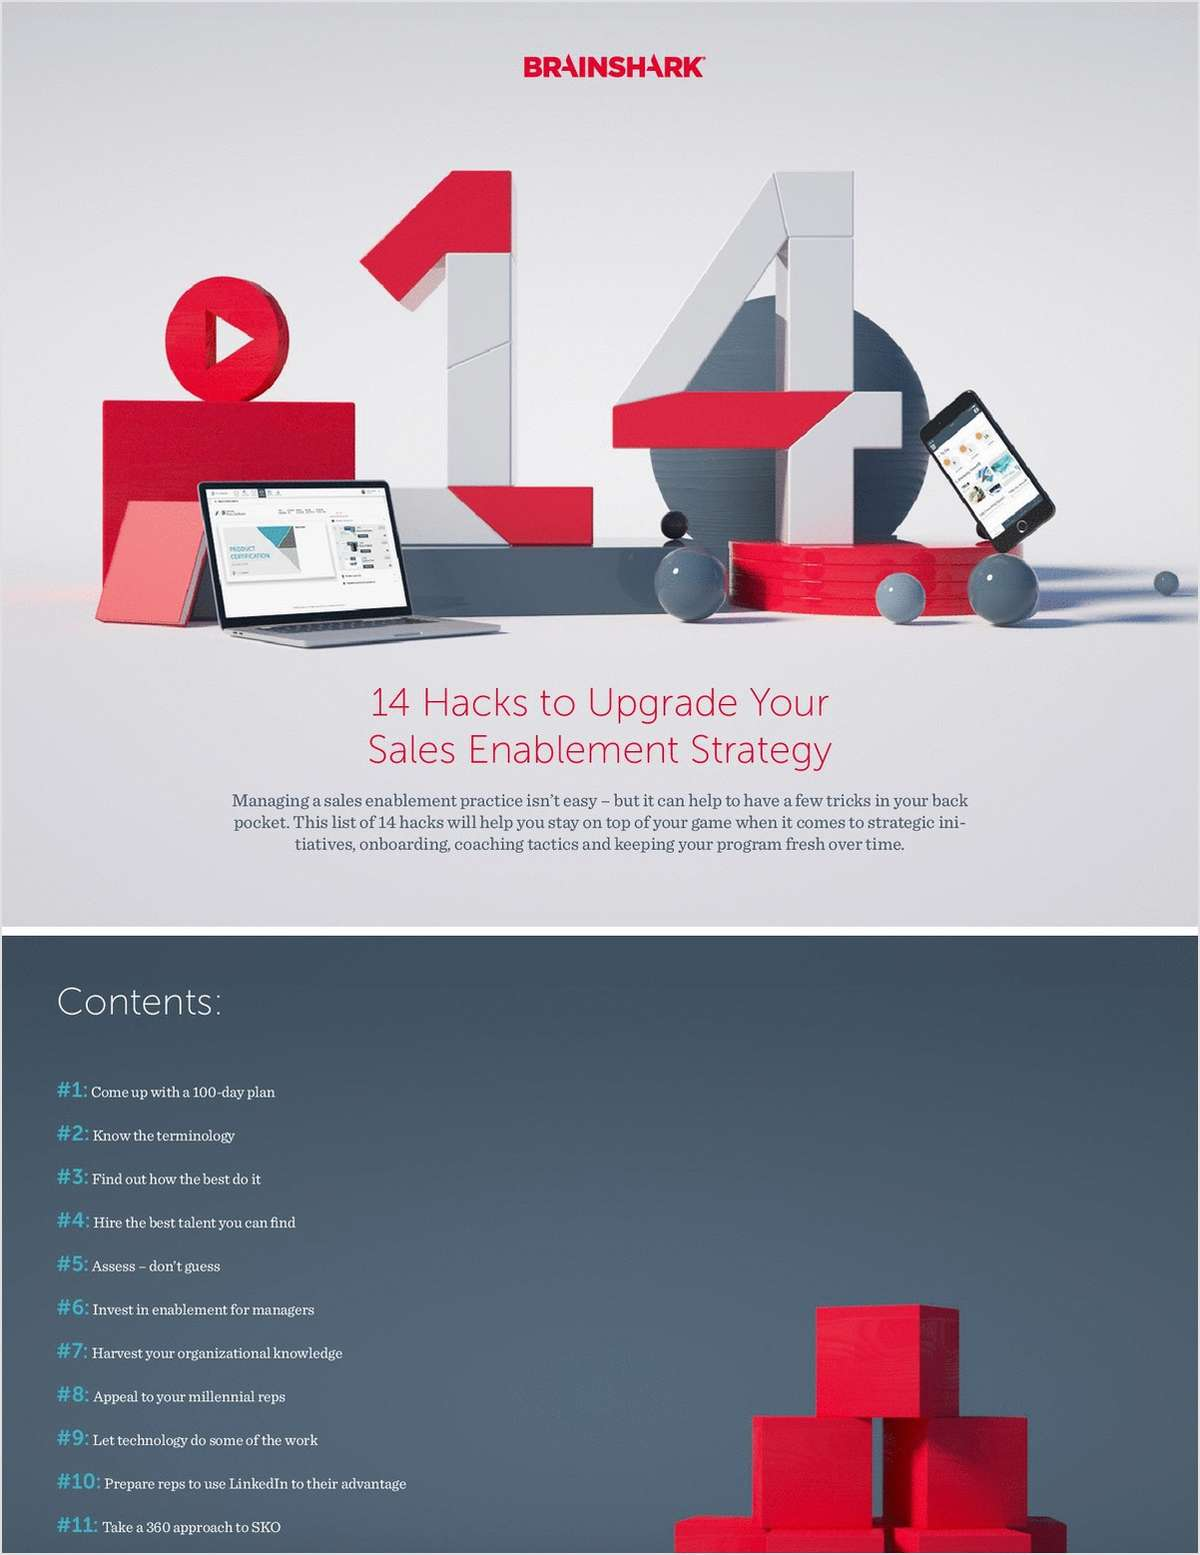 14 Hacks to Upgrade Your Sales Enablement Strategy